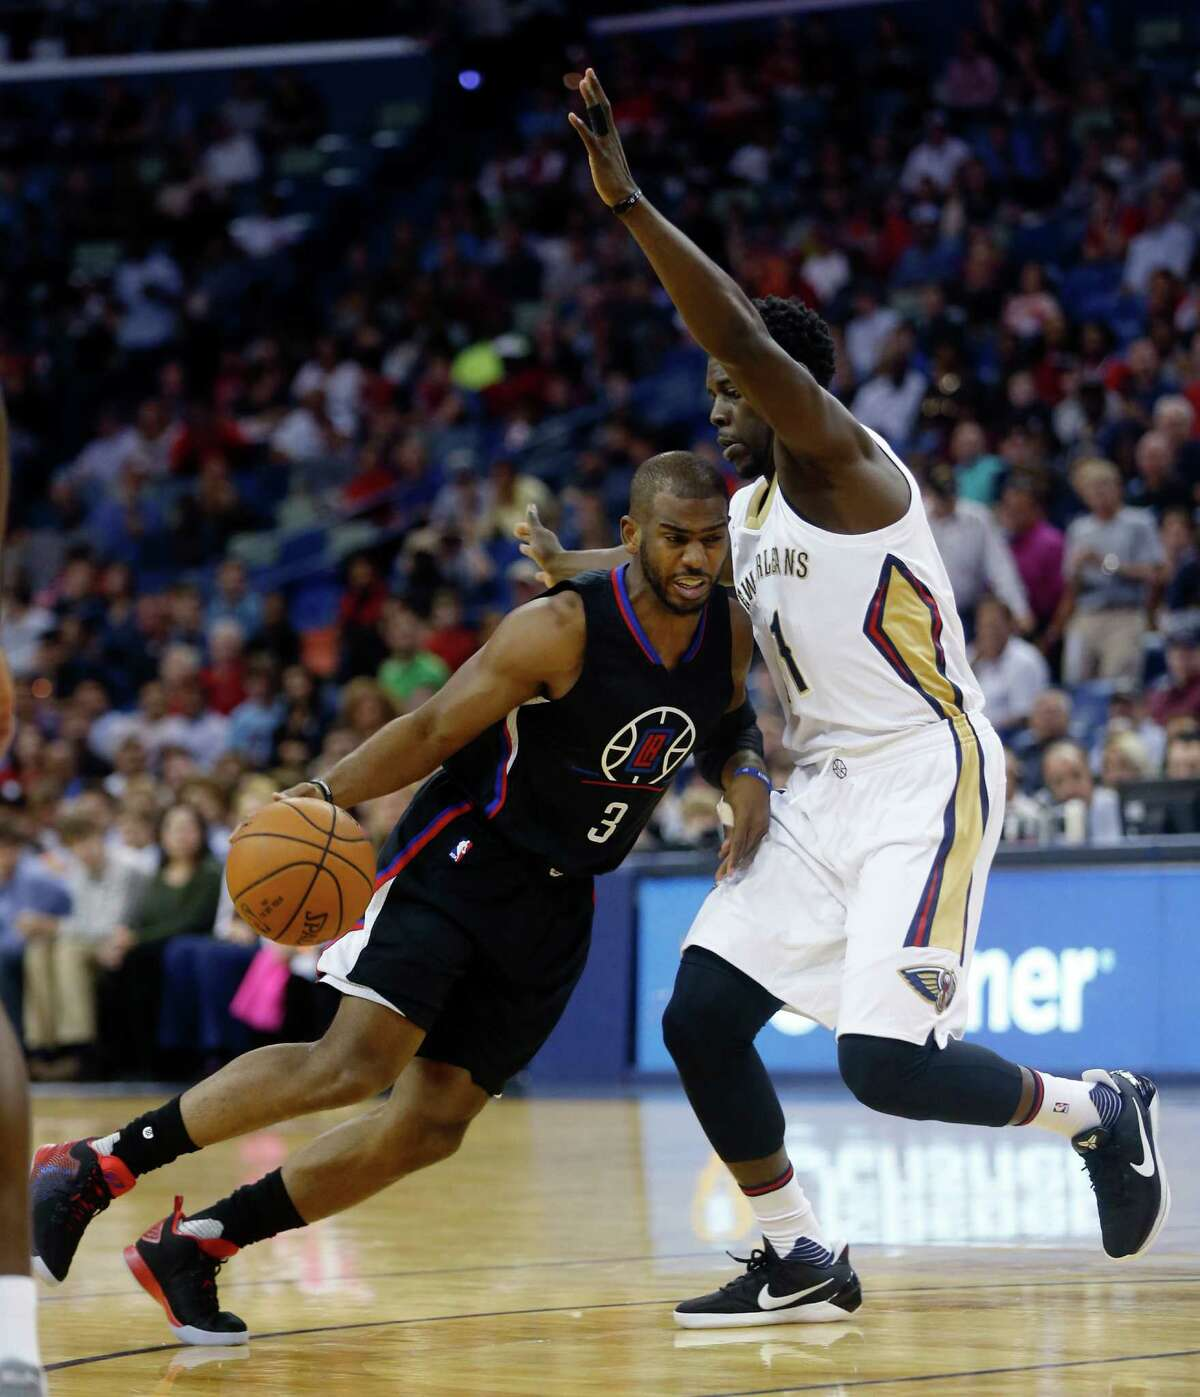 Los Angeles Clippers guard Chris Paul (3) drives to the basket againstguard Jrue Holiday (11) in the first half of an NBA basketball game in New Orleans, Wednesday, Dec. 28, 2016. (AP Photo/Gerald Herbert)